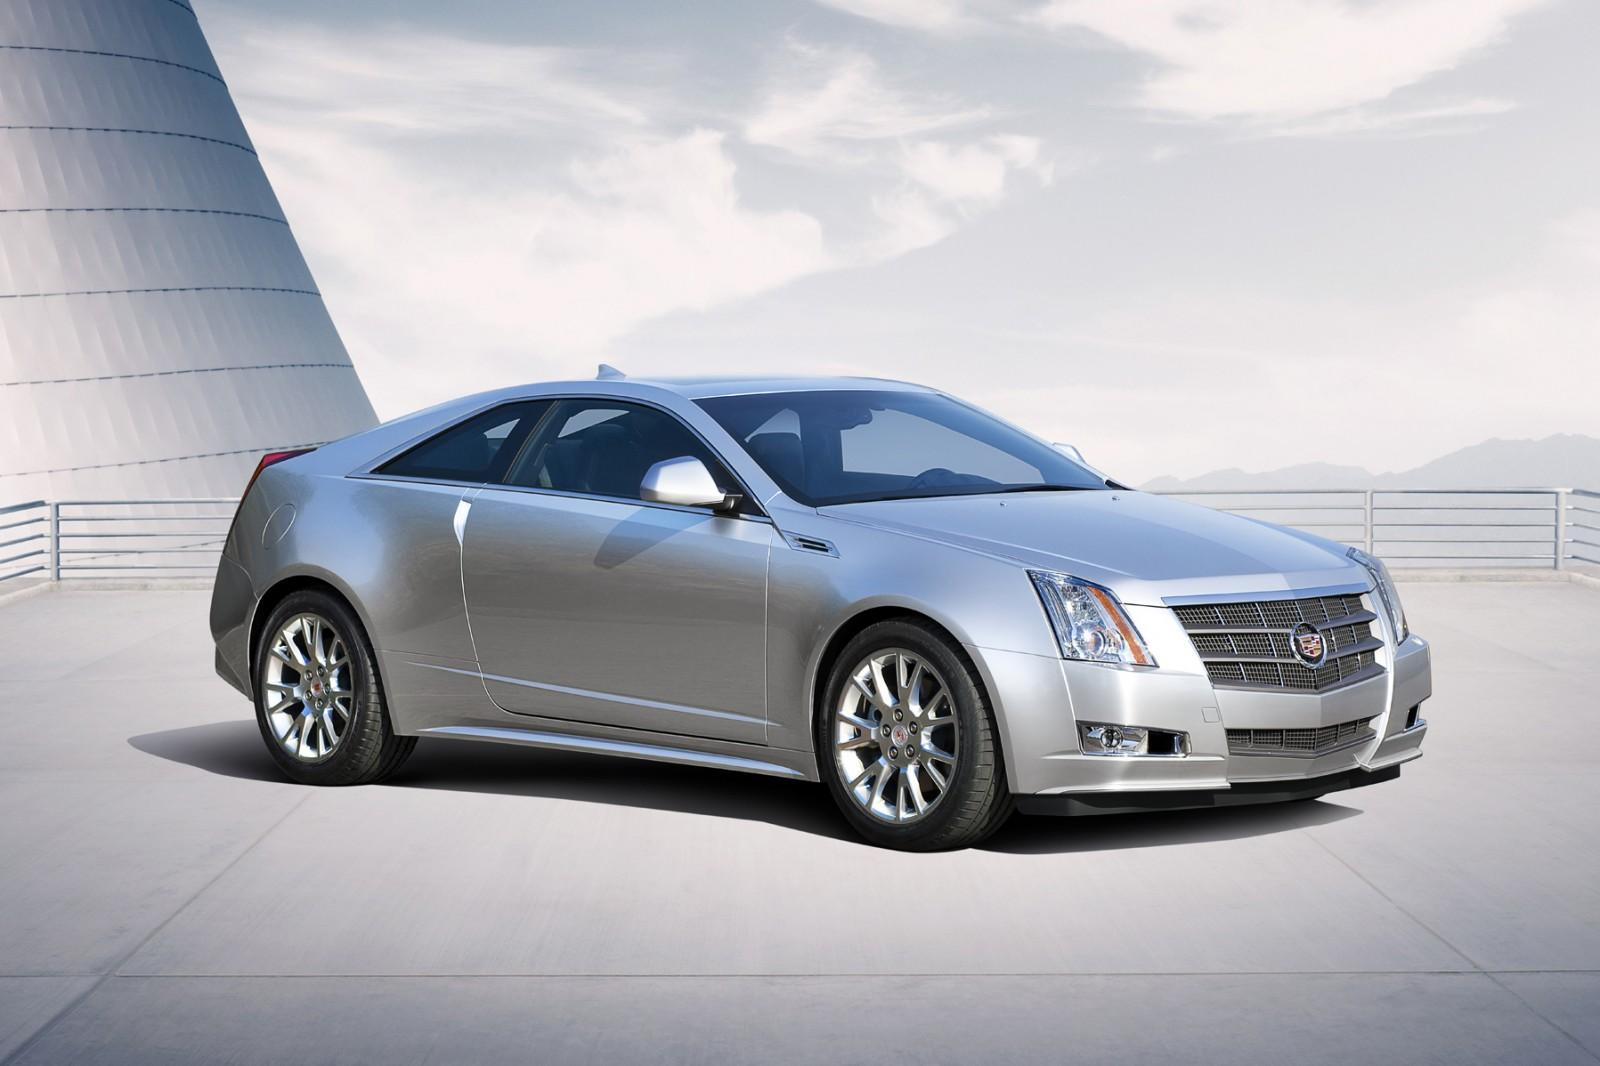 2013 Cadillac Cts Coupe >> 2013 Cadillac Cts Coupe 1600px Image 13